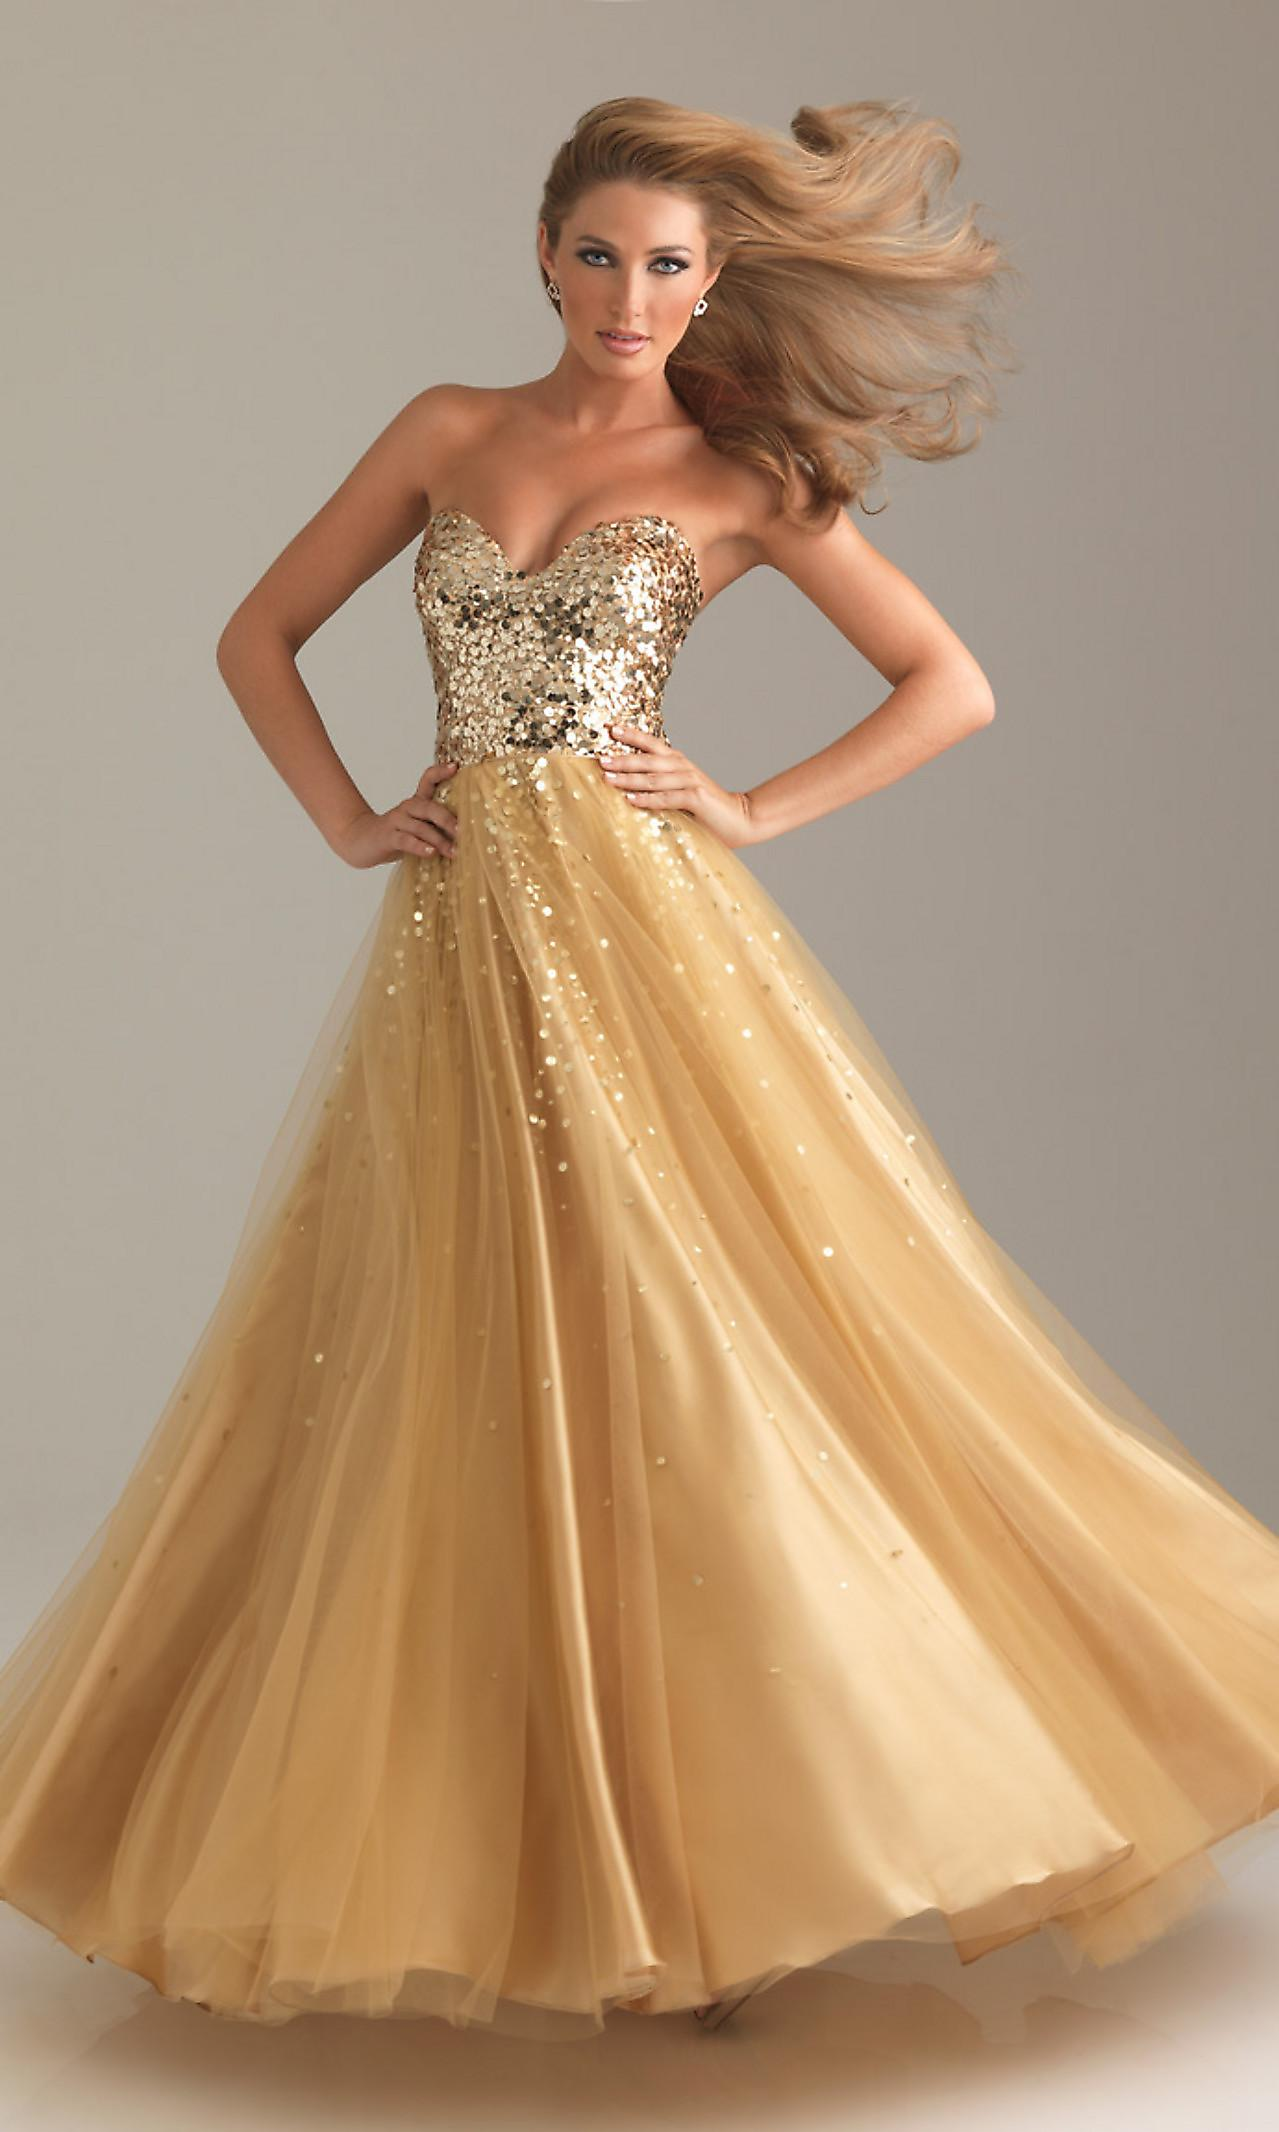 Sequin Ball Gowns, Night Moves Dresses for Prom - Simply Dresses